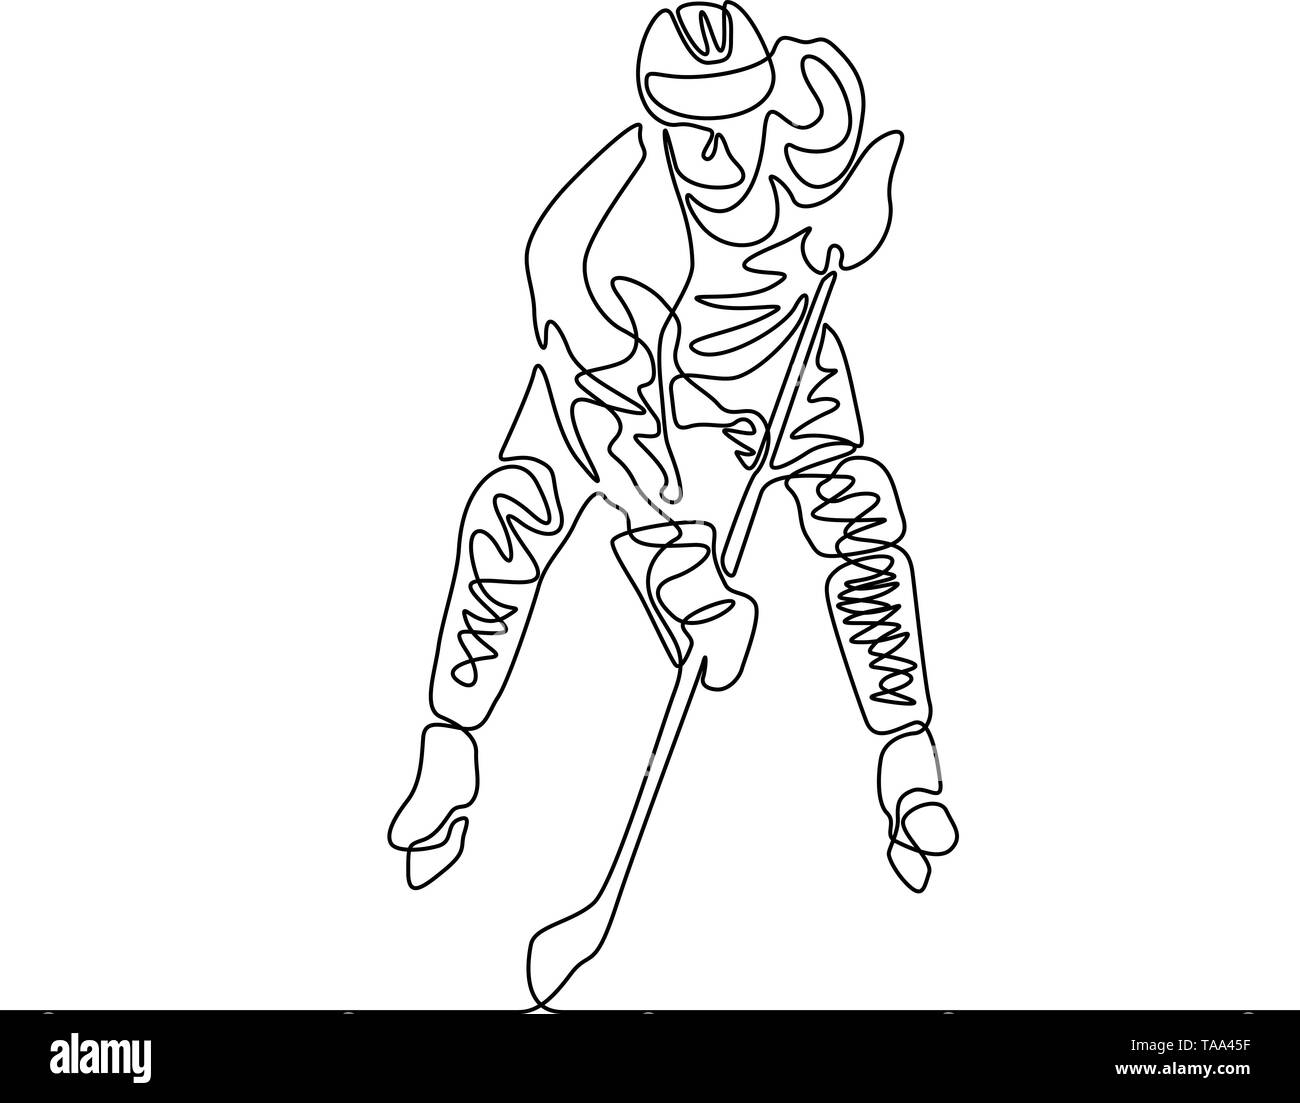 Continuous one line Hockey player, winter sport - Stock Image